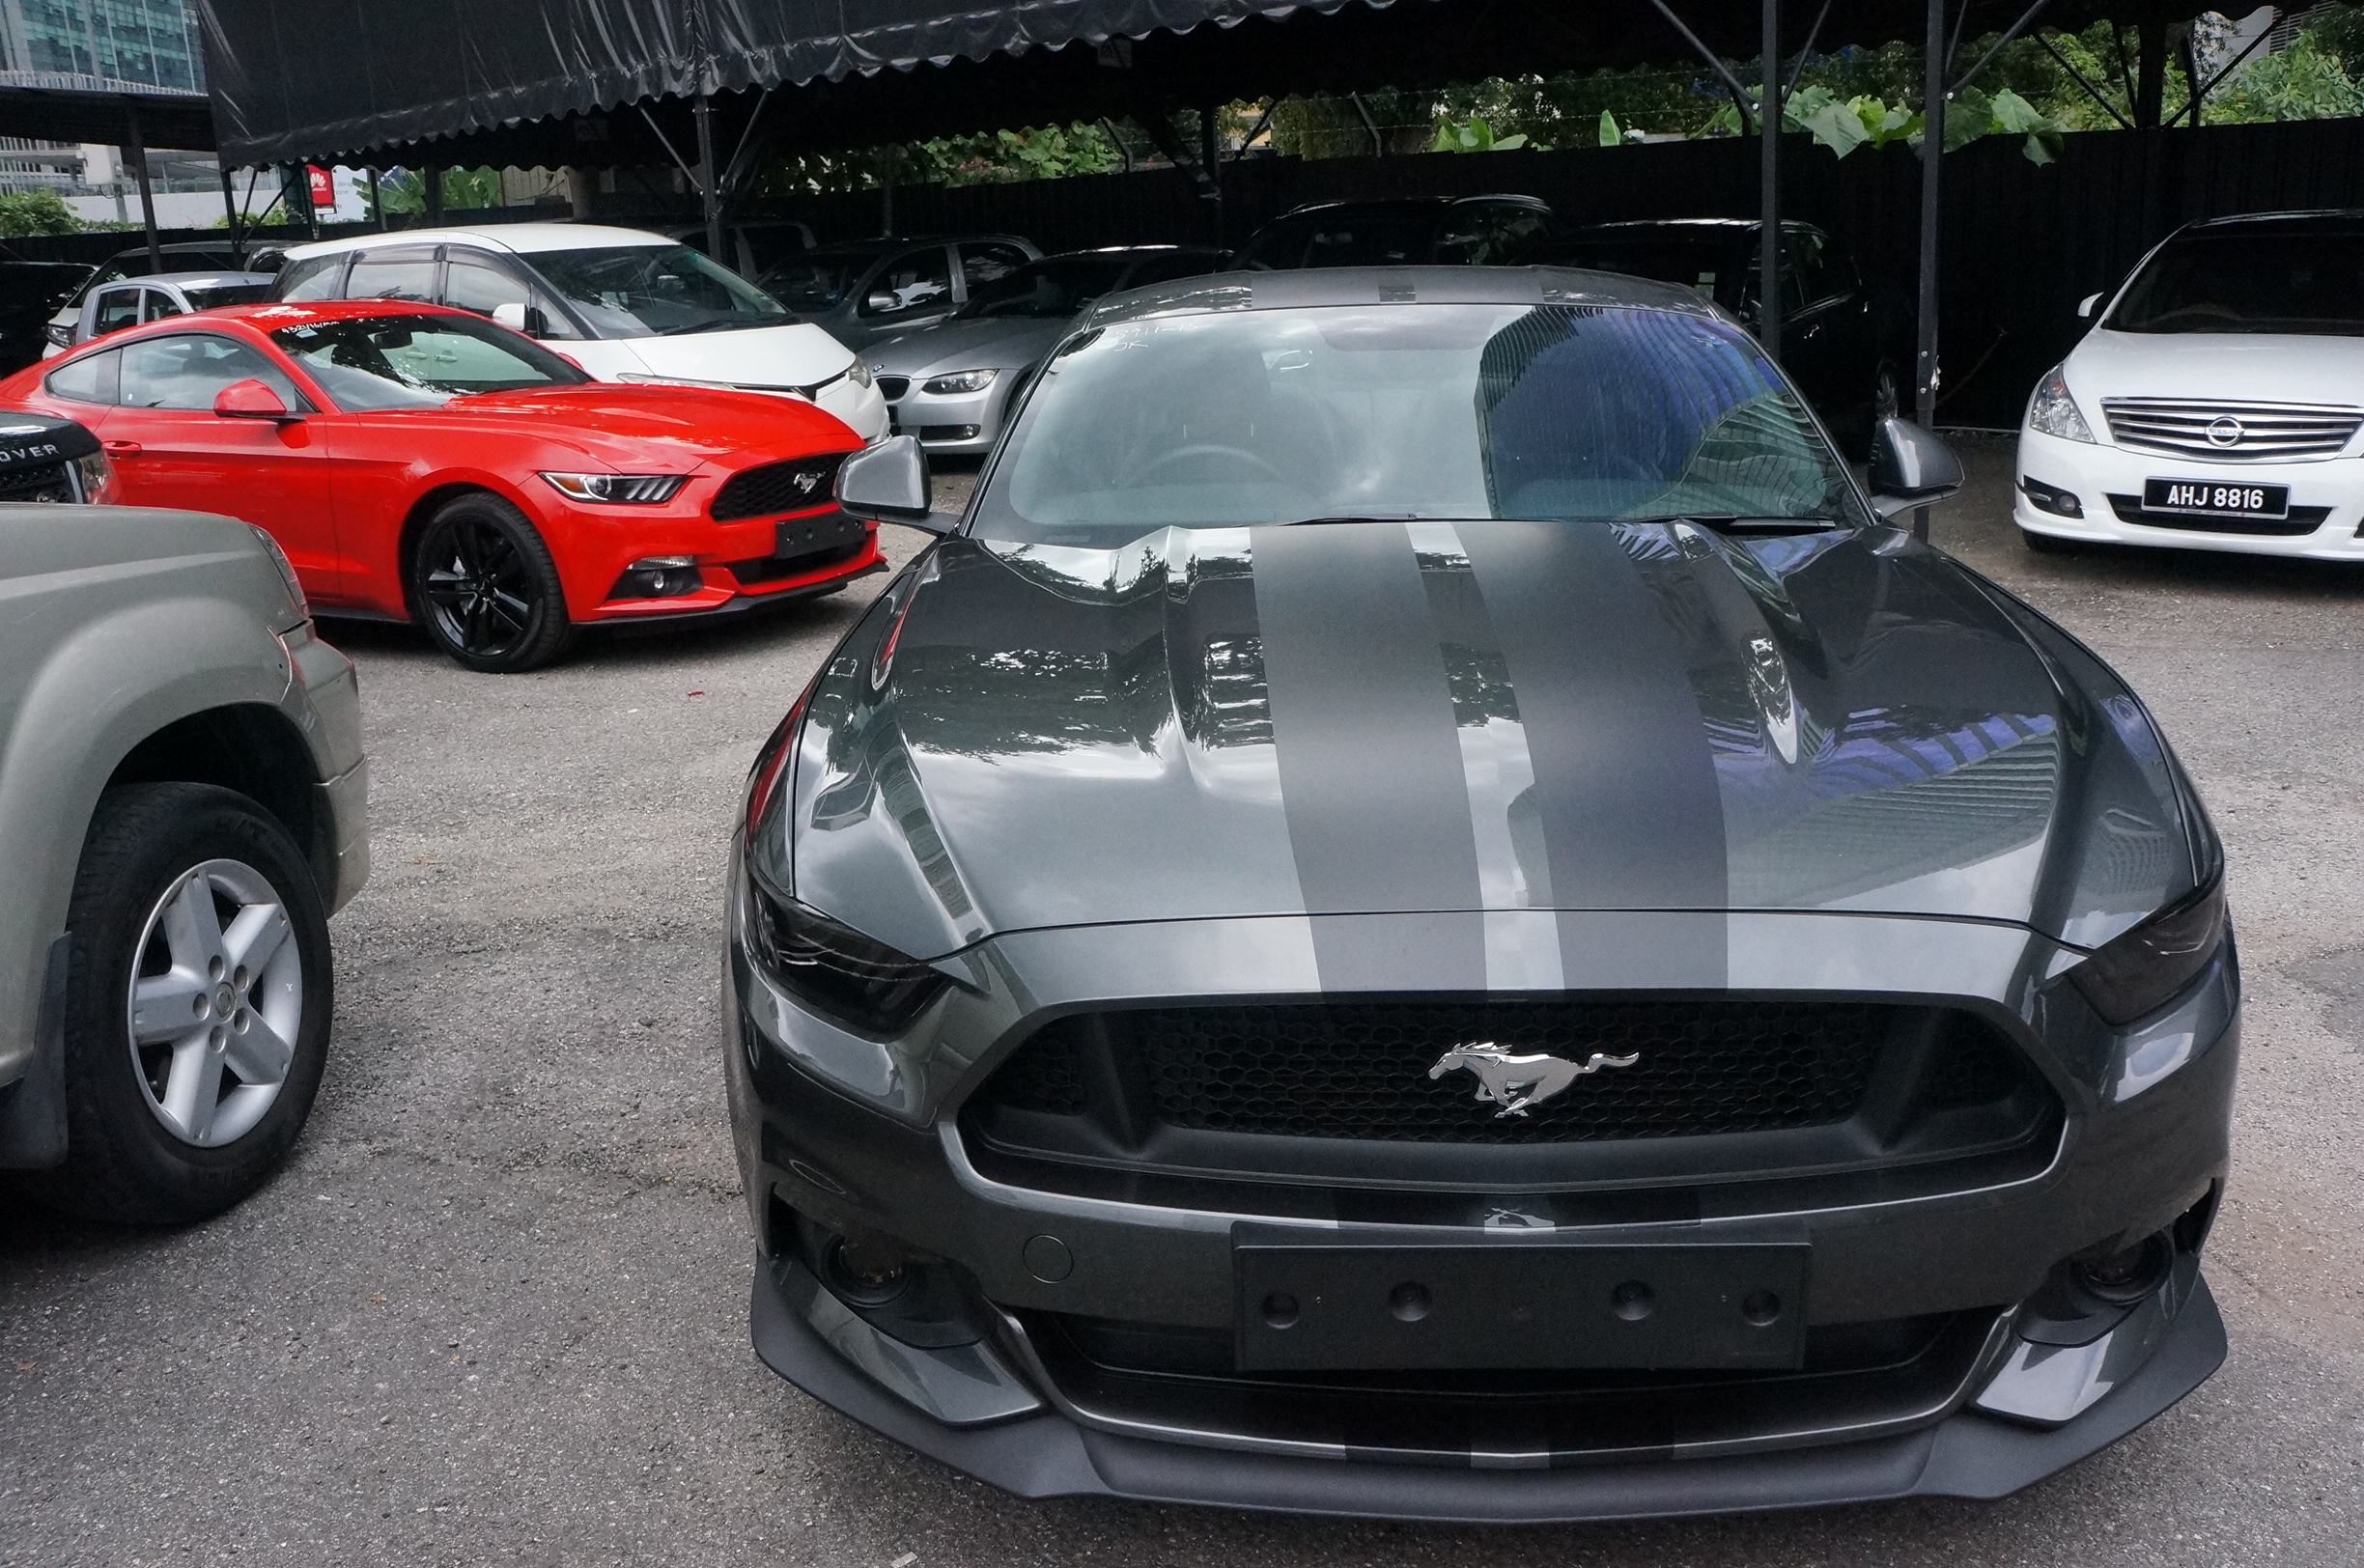 Ford mustang 2 3l ecoboost 2016 and ford mustang gt 5 0 v8 2016